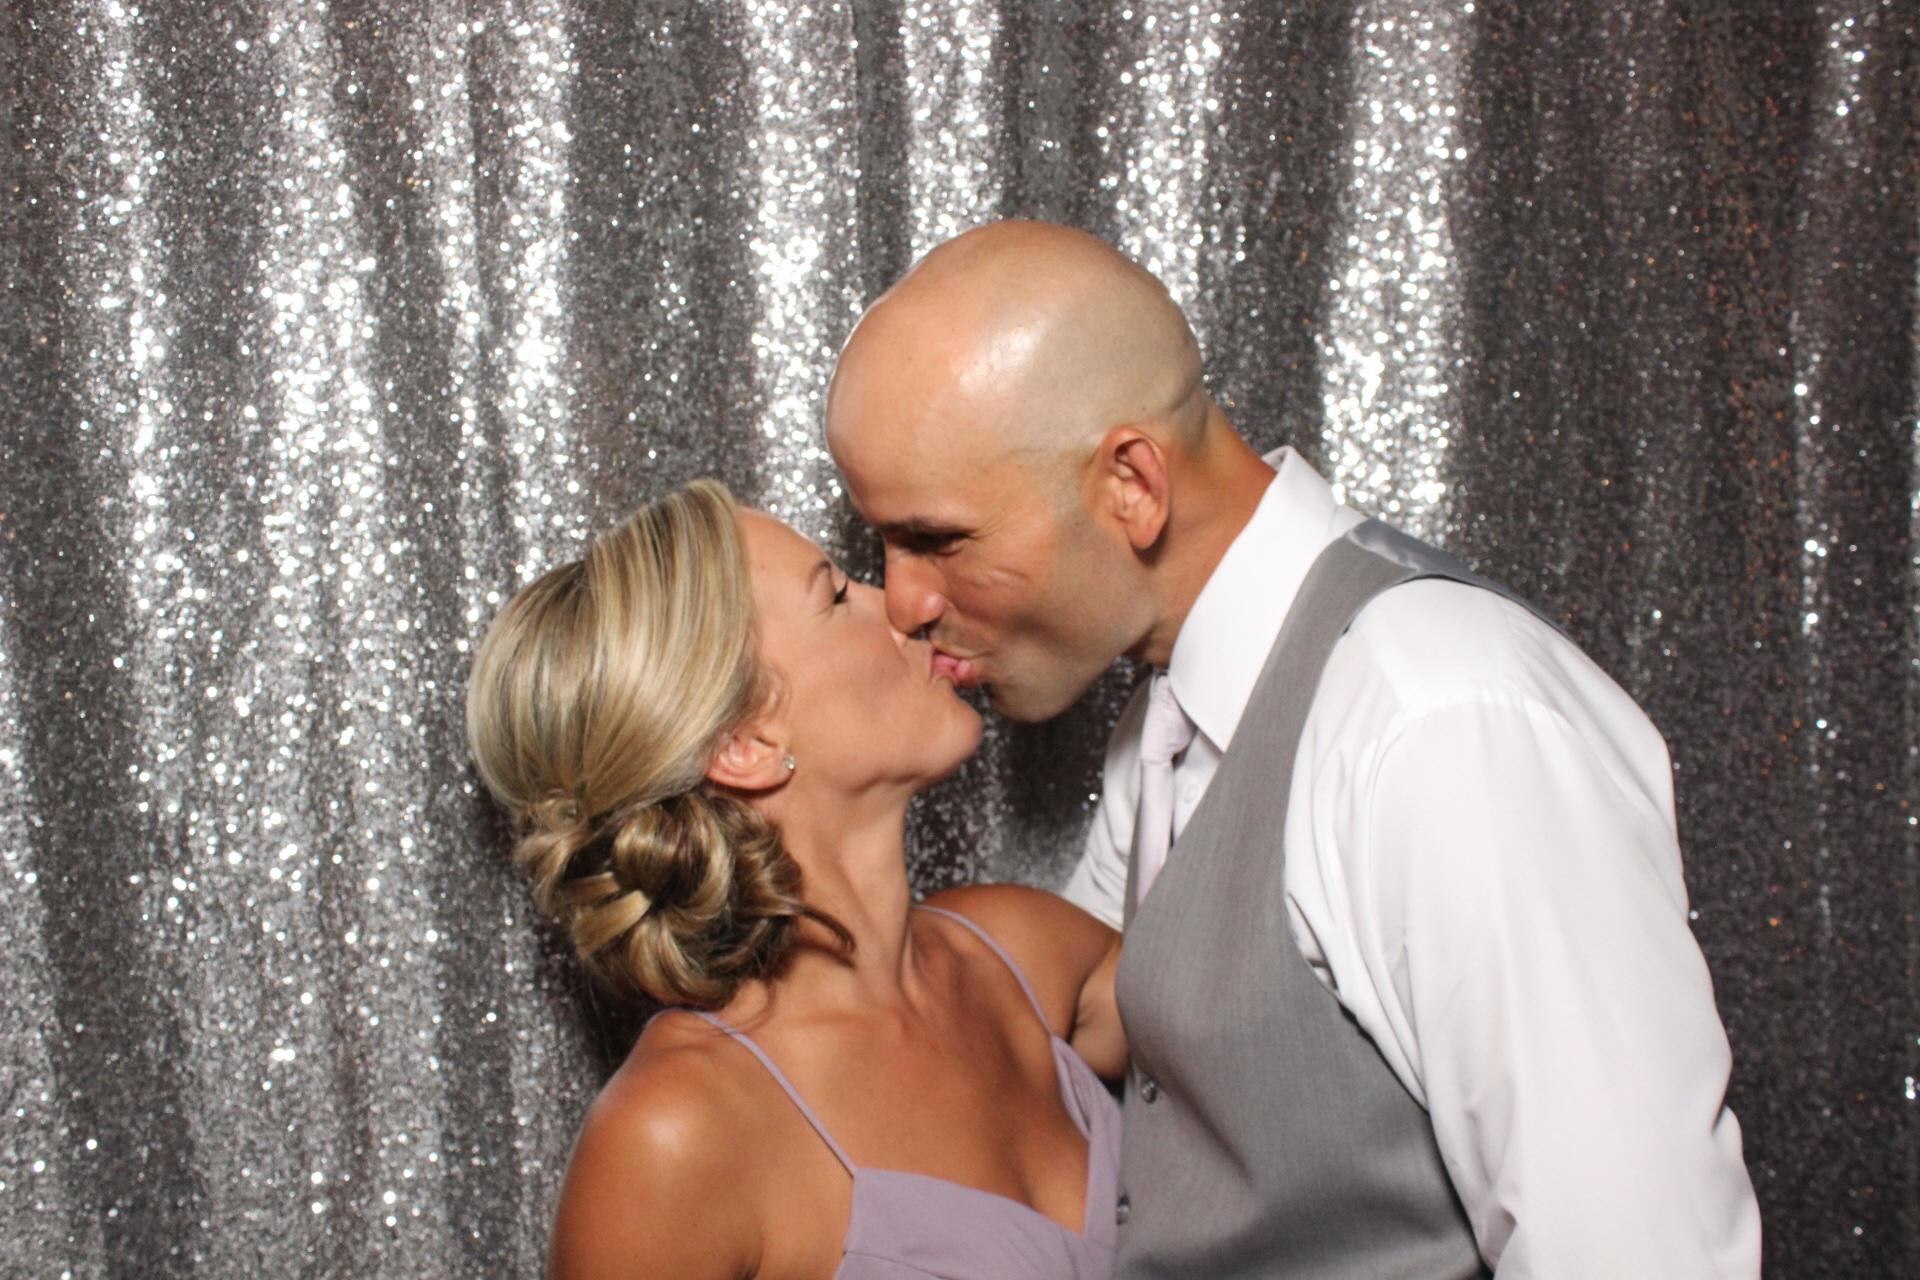 couple kissing in front of silver glitter backdrop